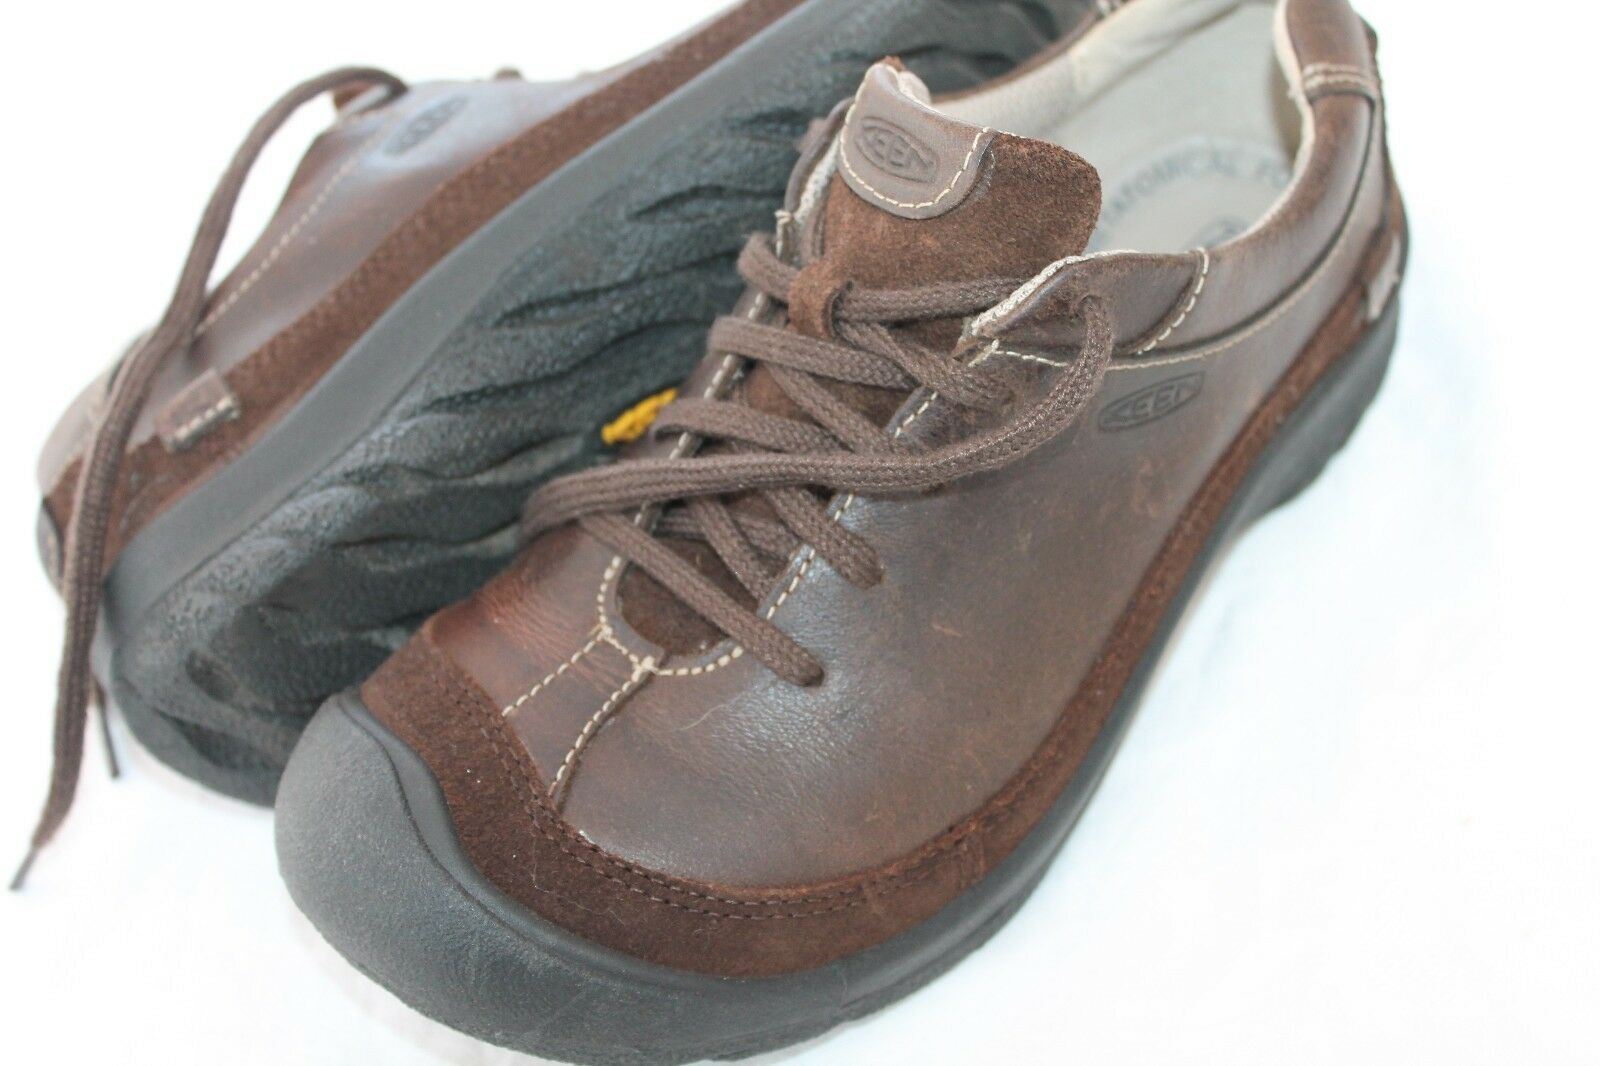 KEEN SIZE 6.5 BROWN LEATHER OXFORD SHOES